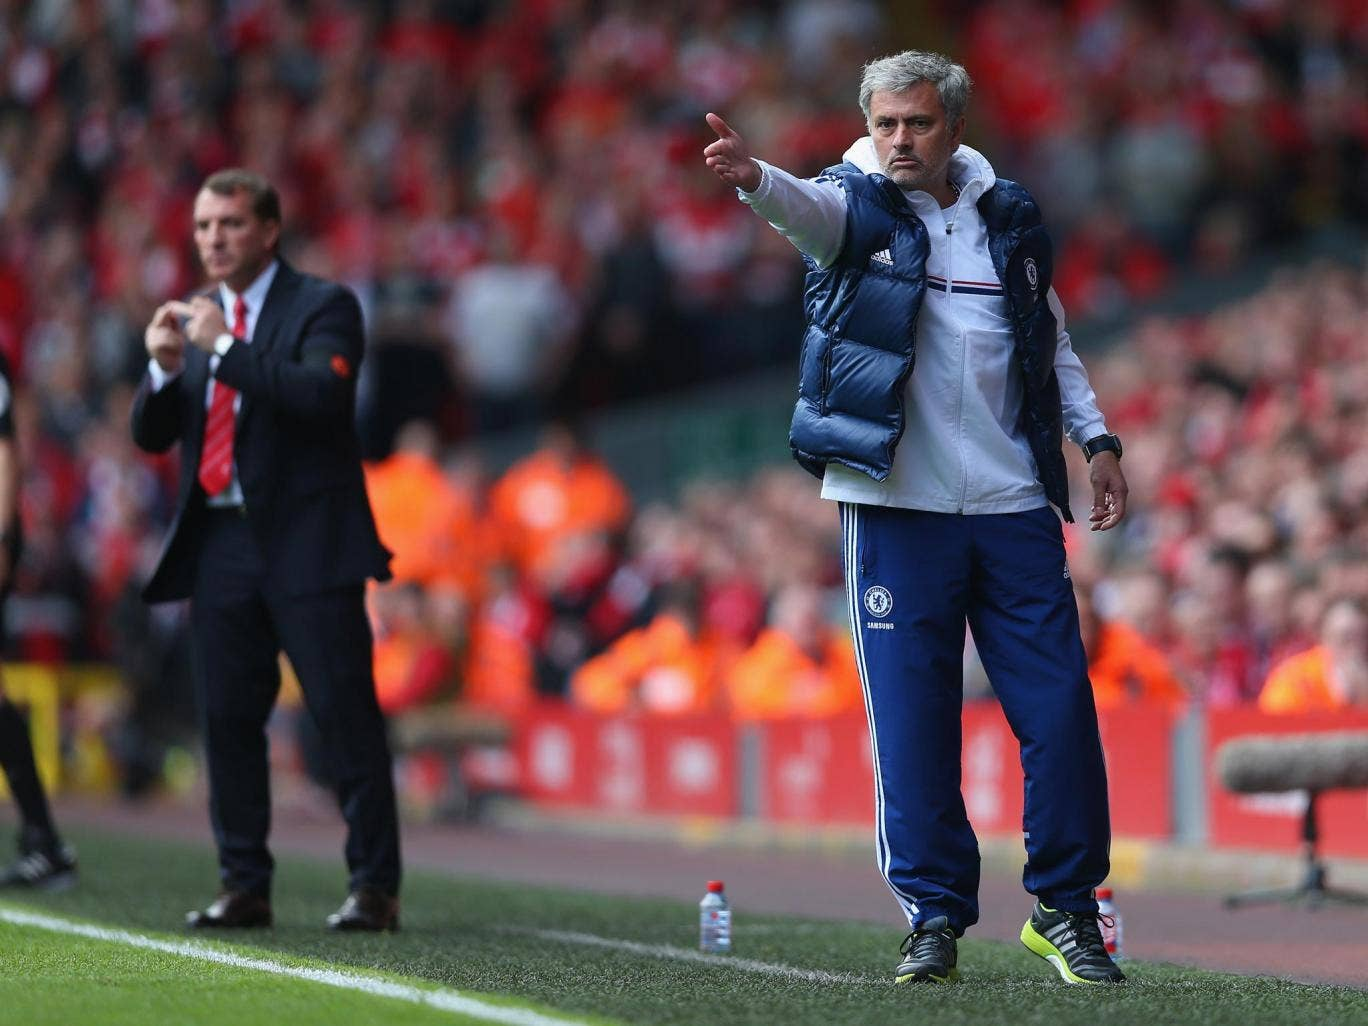 Jose Mourinho remonstrates from the sidelines during Chelsea's 2-0 victory over Liverpool